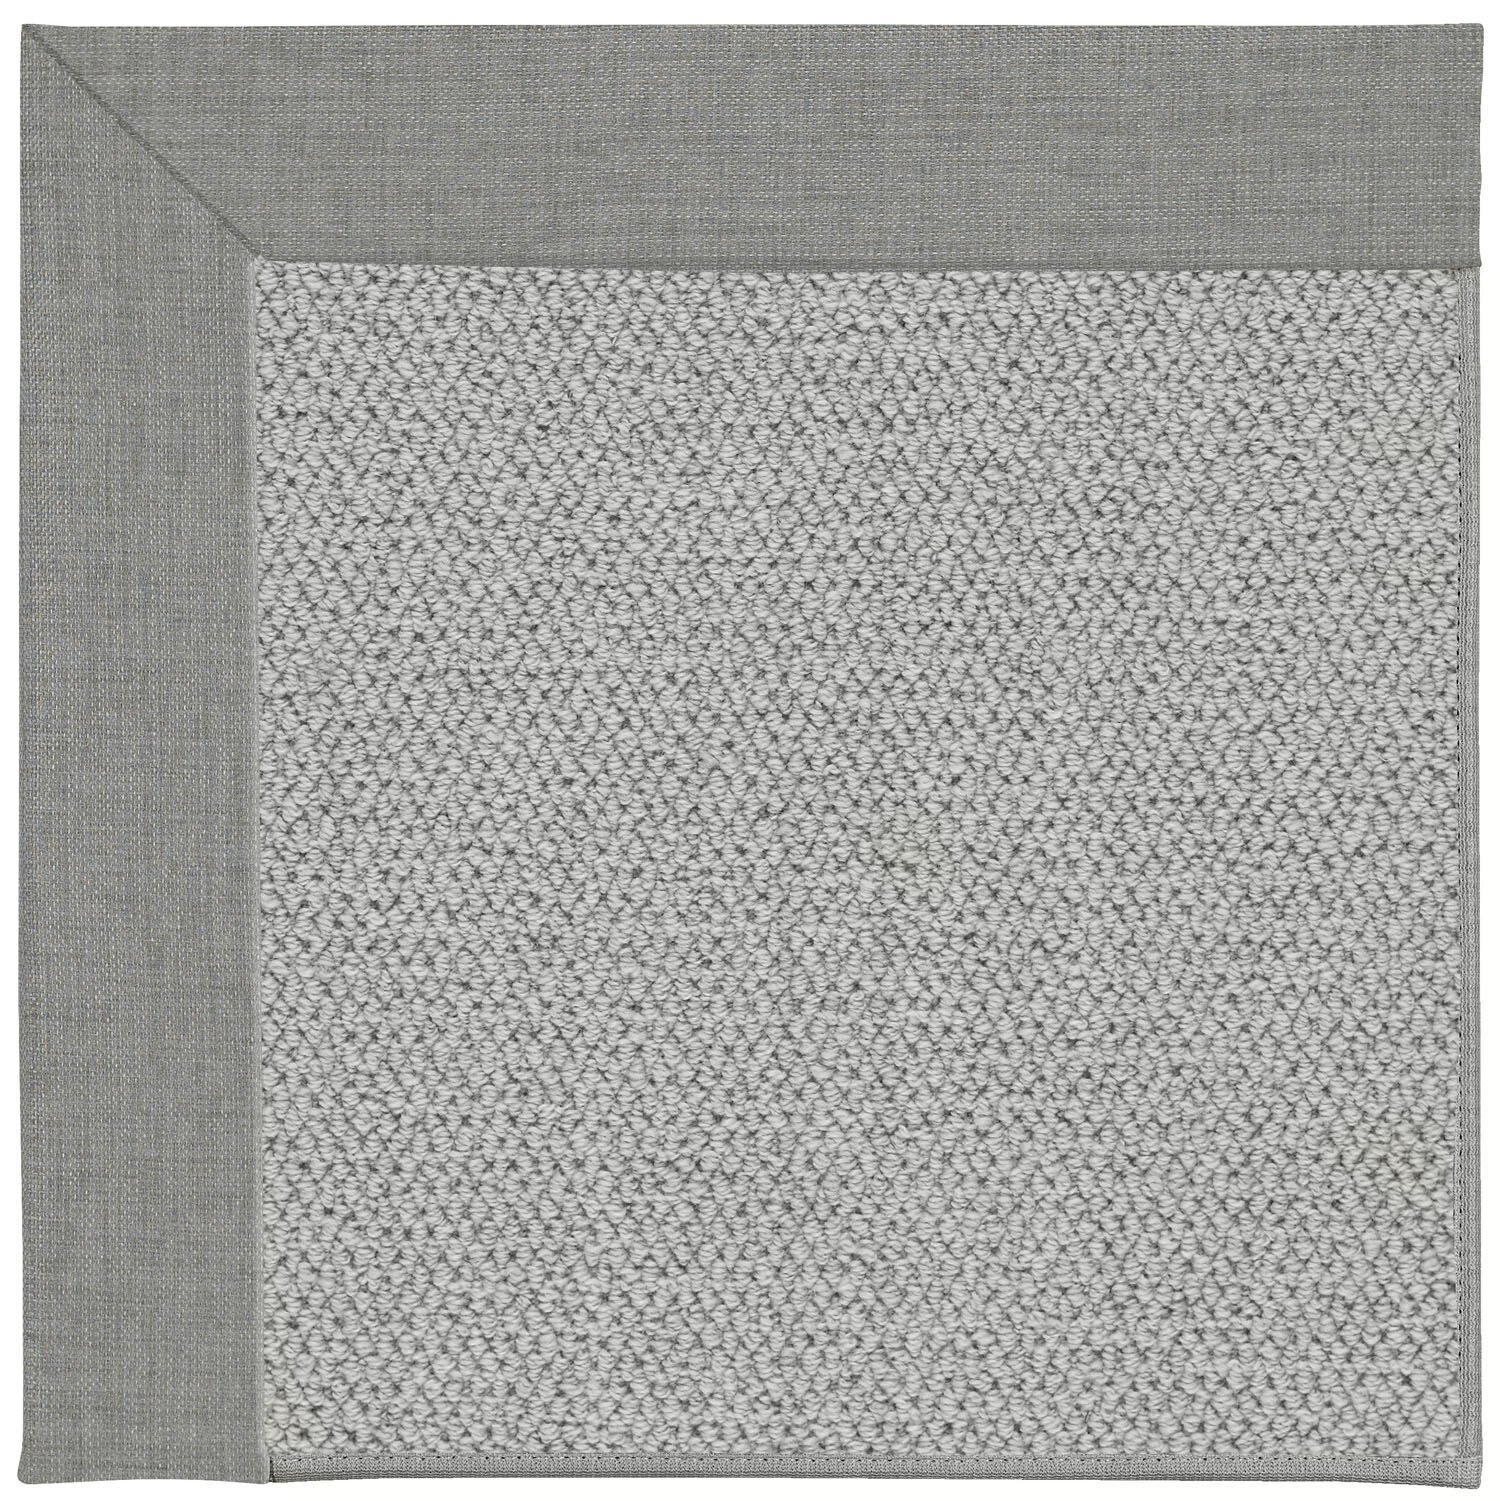 Inspirit Machine Tufted Steel Gray Area Rug By Capel Rugs